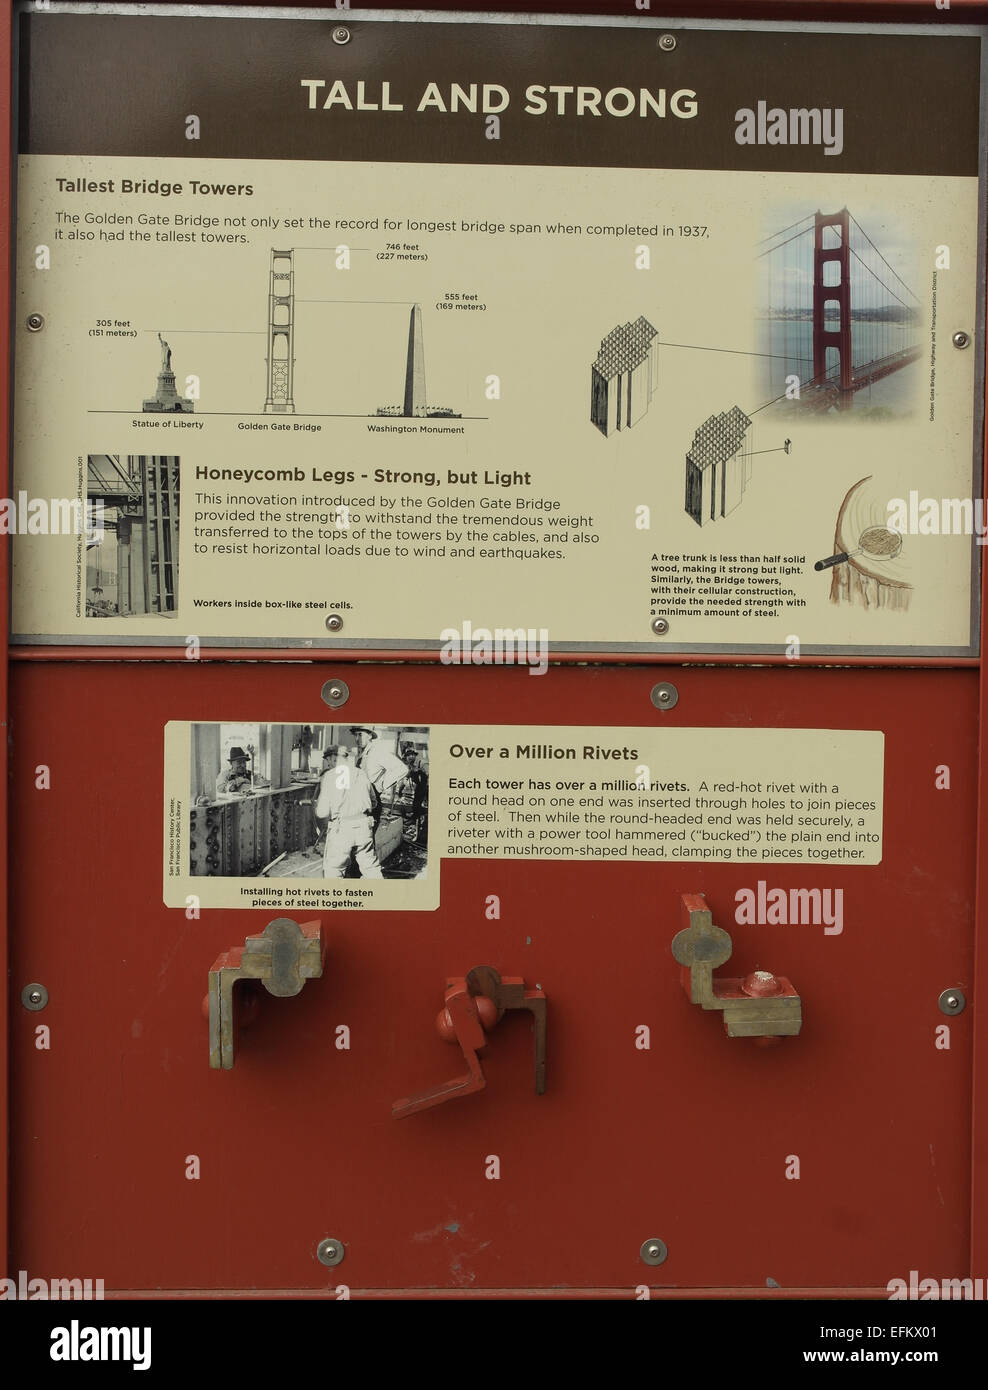 Information board about the cellular construction giving